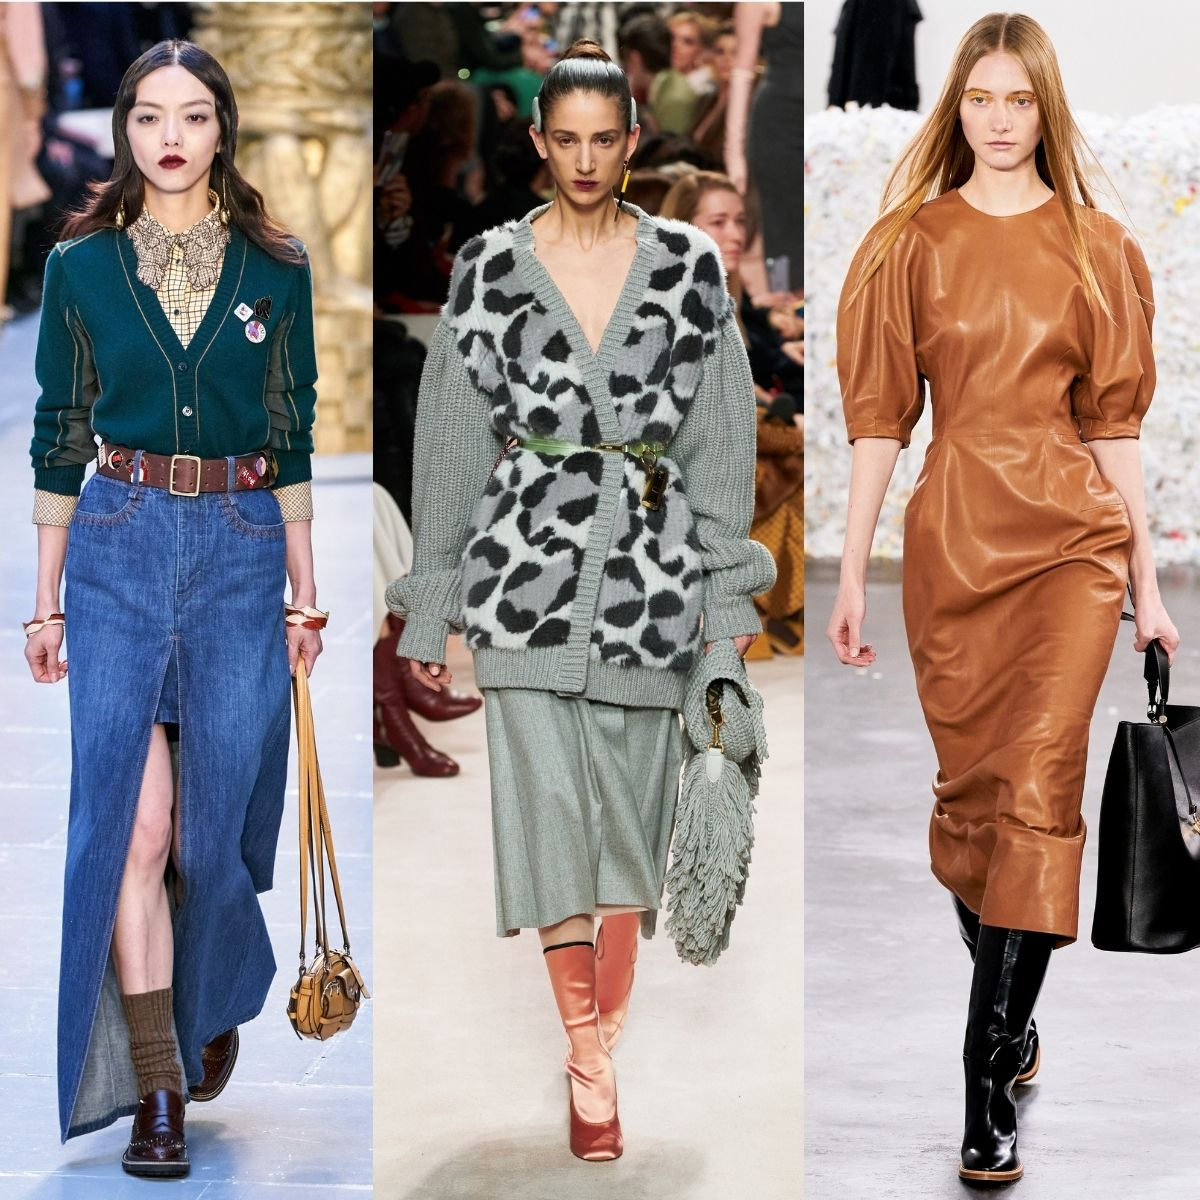 Chloe. Fendi and Gabriella Hearst runway images